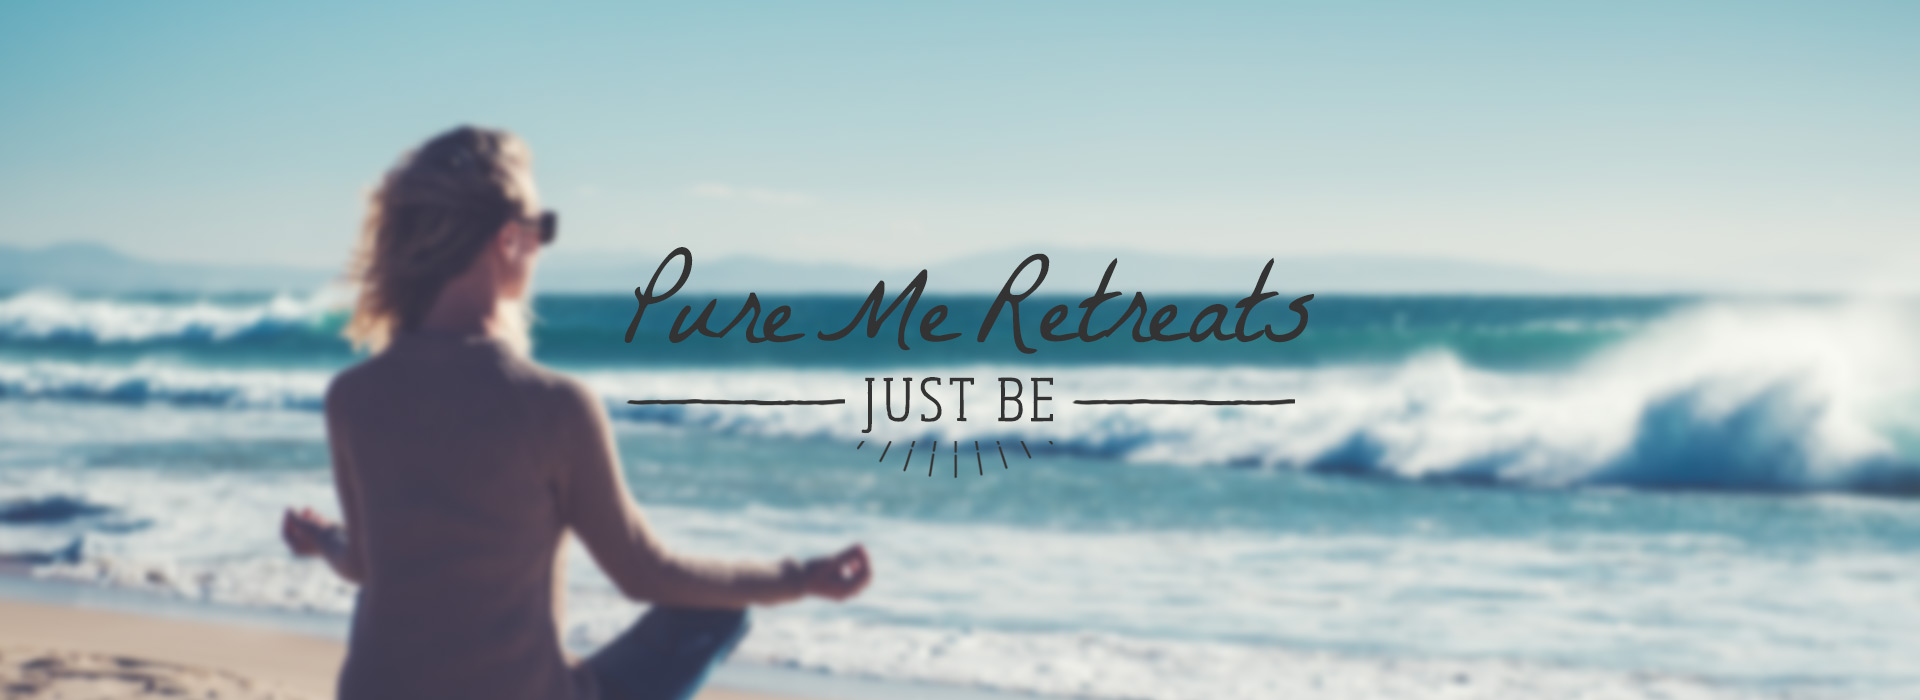 Pure-Me-Retreats-slider1